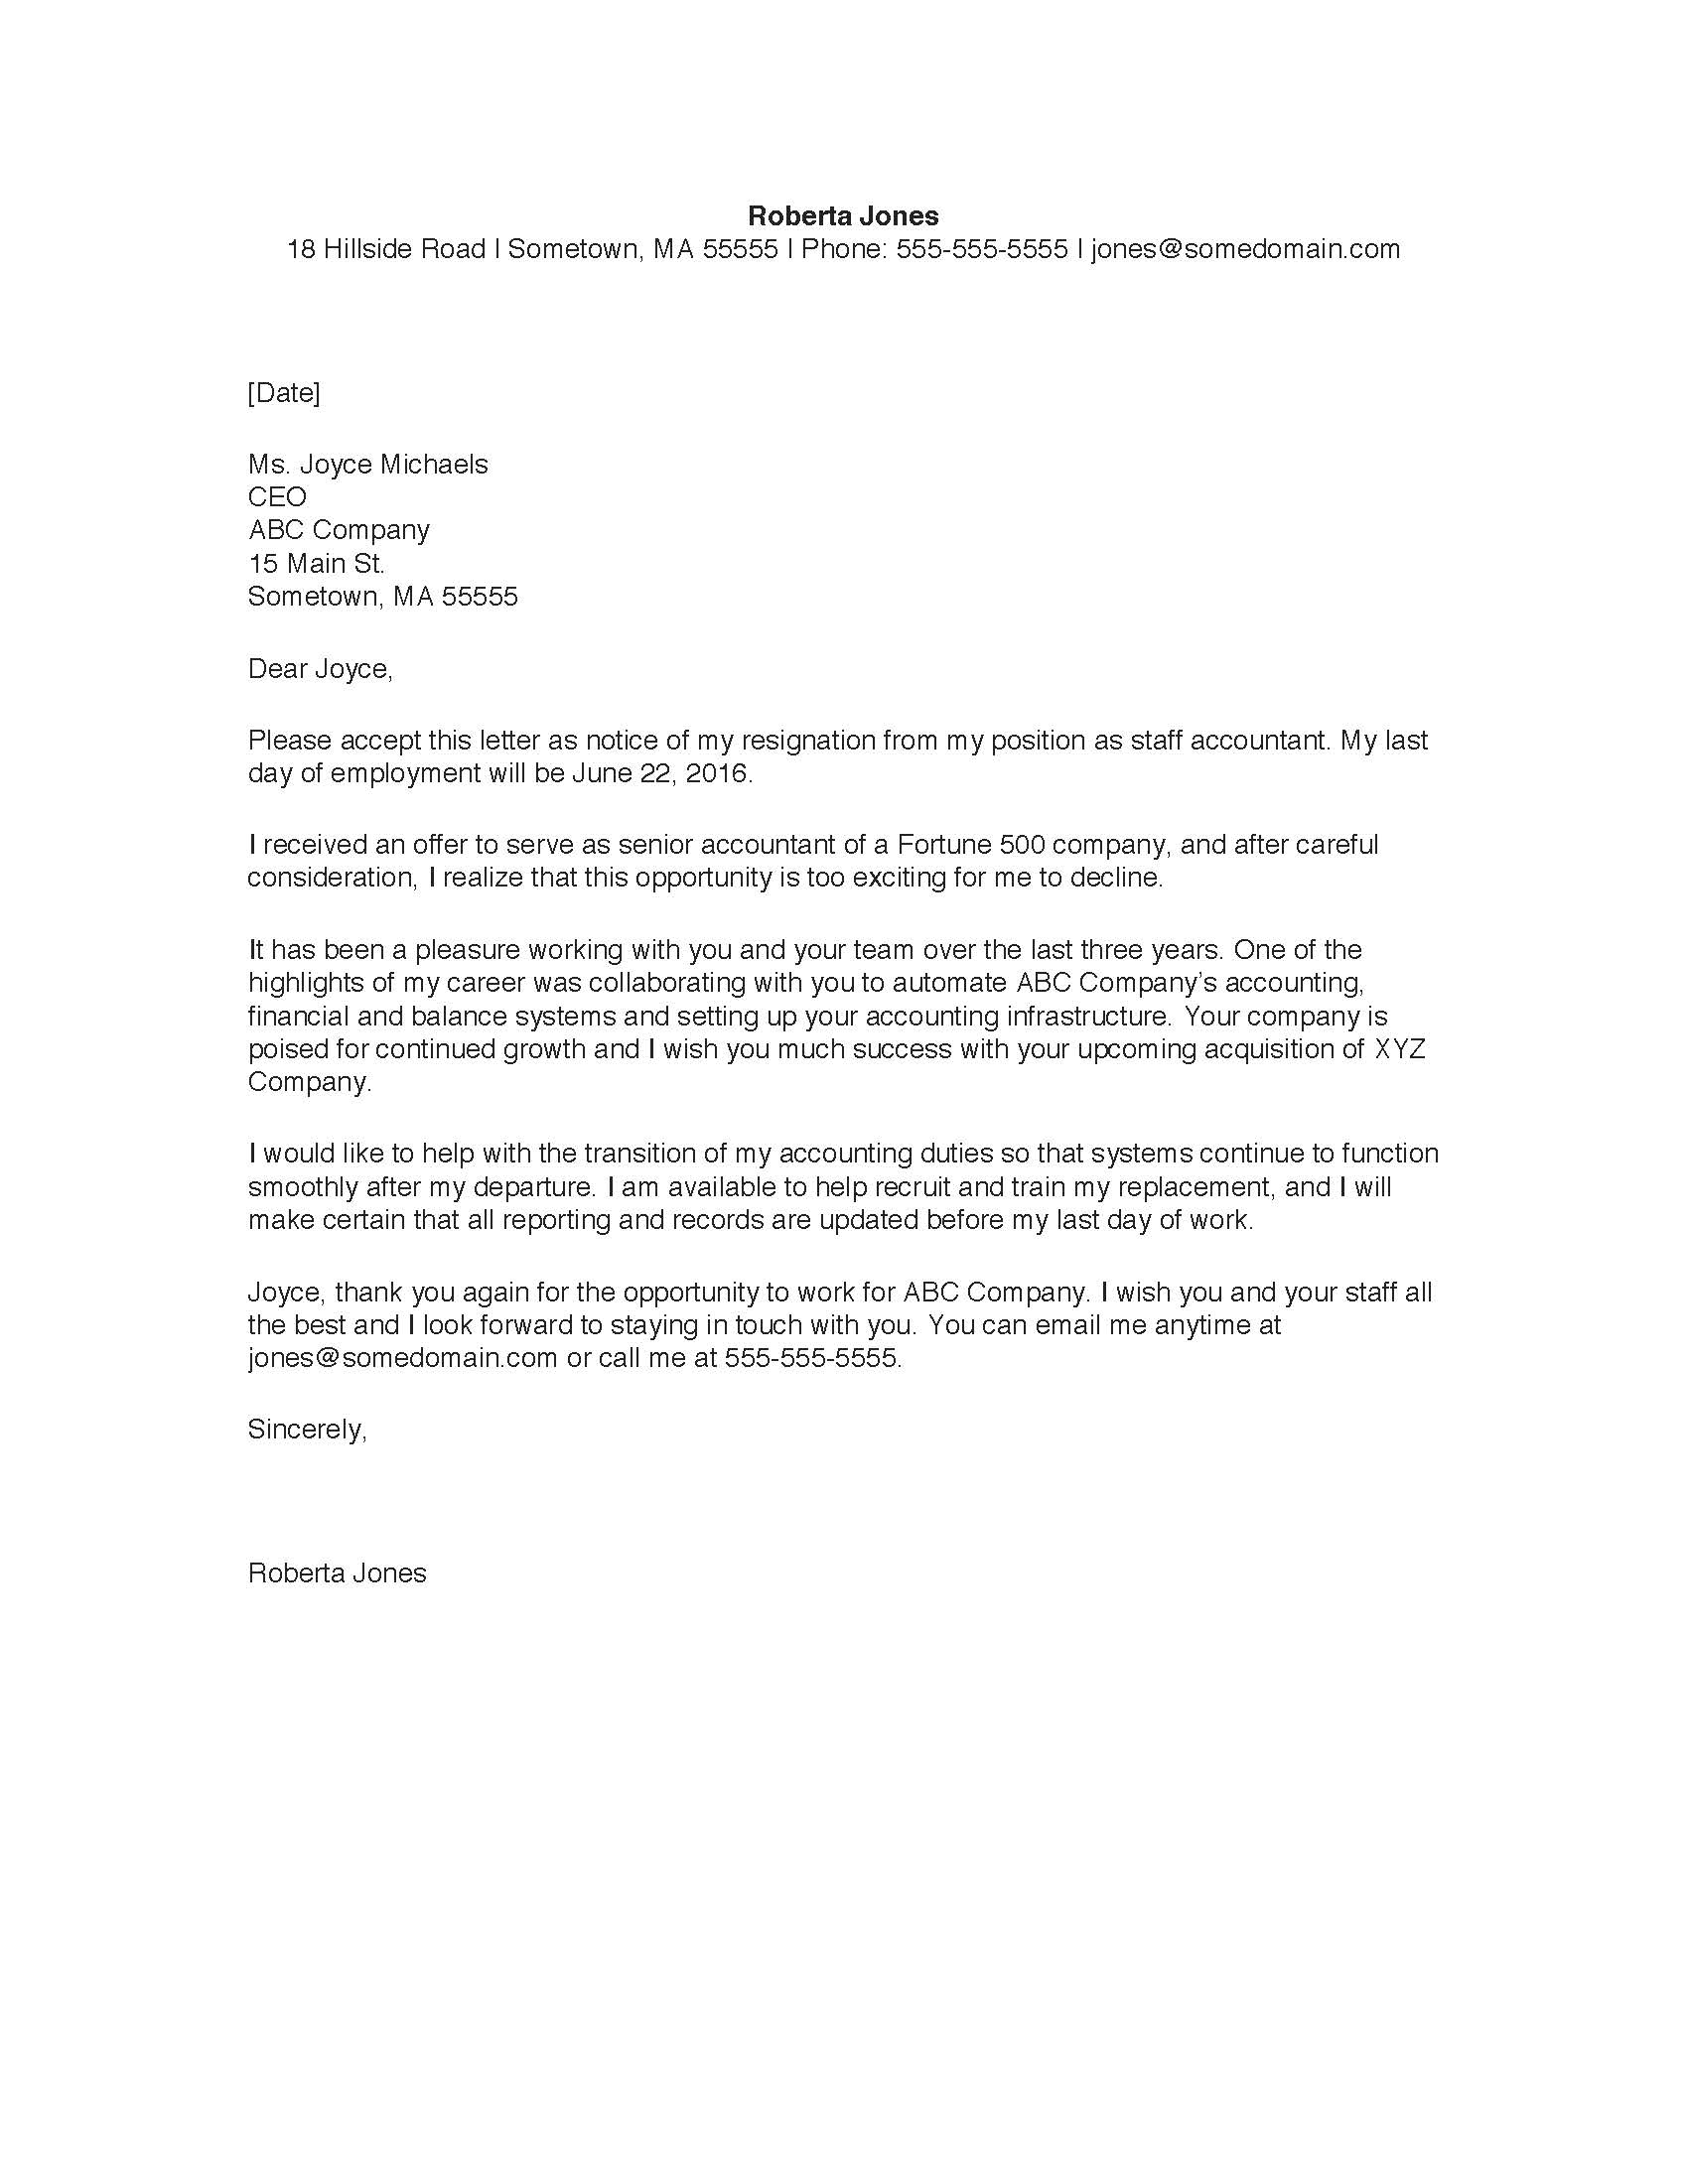 Sample Resignation Letter | Monster.com